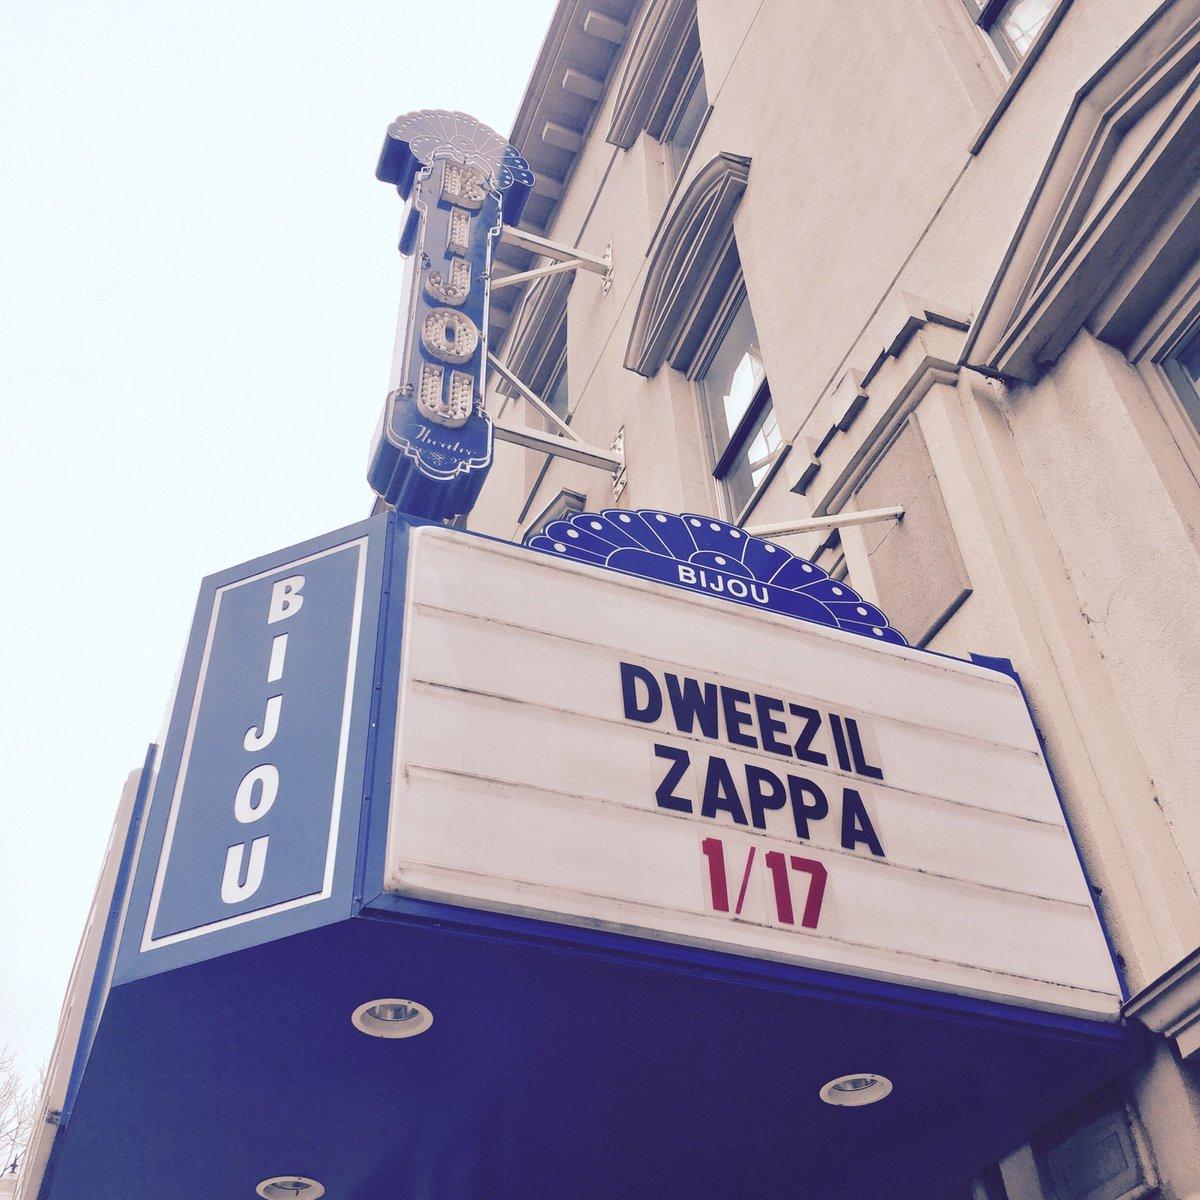 Tonight @DweezilZappa returns to the Bijou Theatre! Doors 7pm / Show 8pm! #knoxrocks https://t.co/QIY6th5aLz